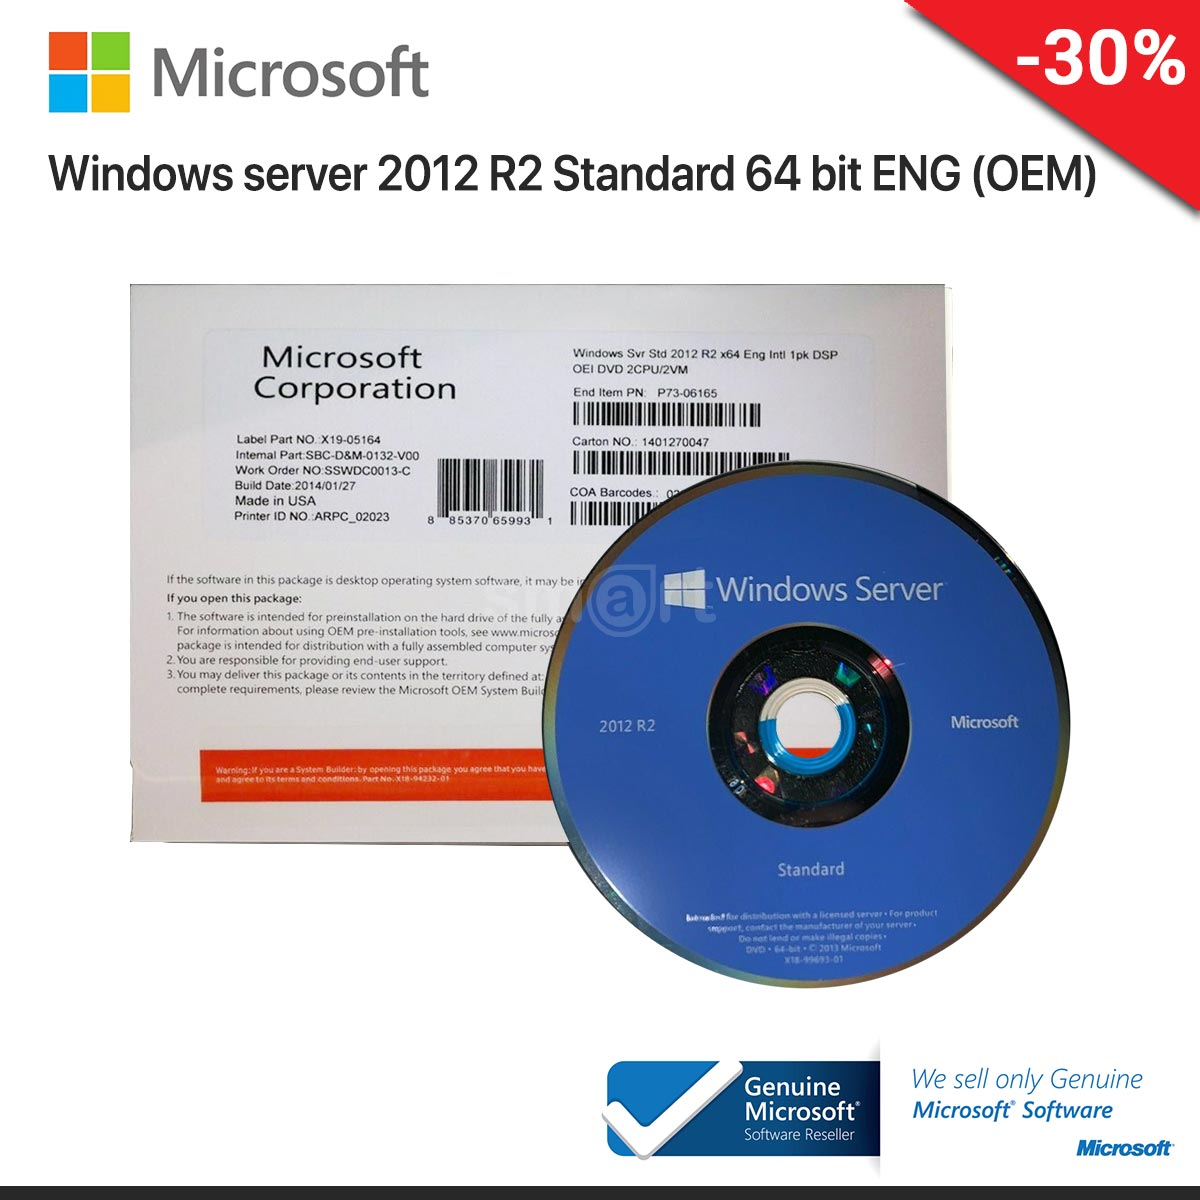 Windows server 2012 R2 Standard 64 bit ENG (OEM)